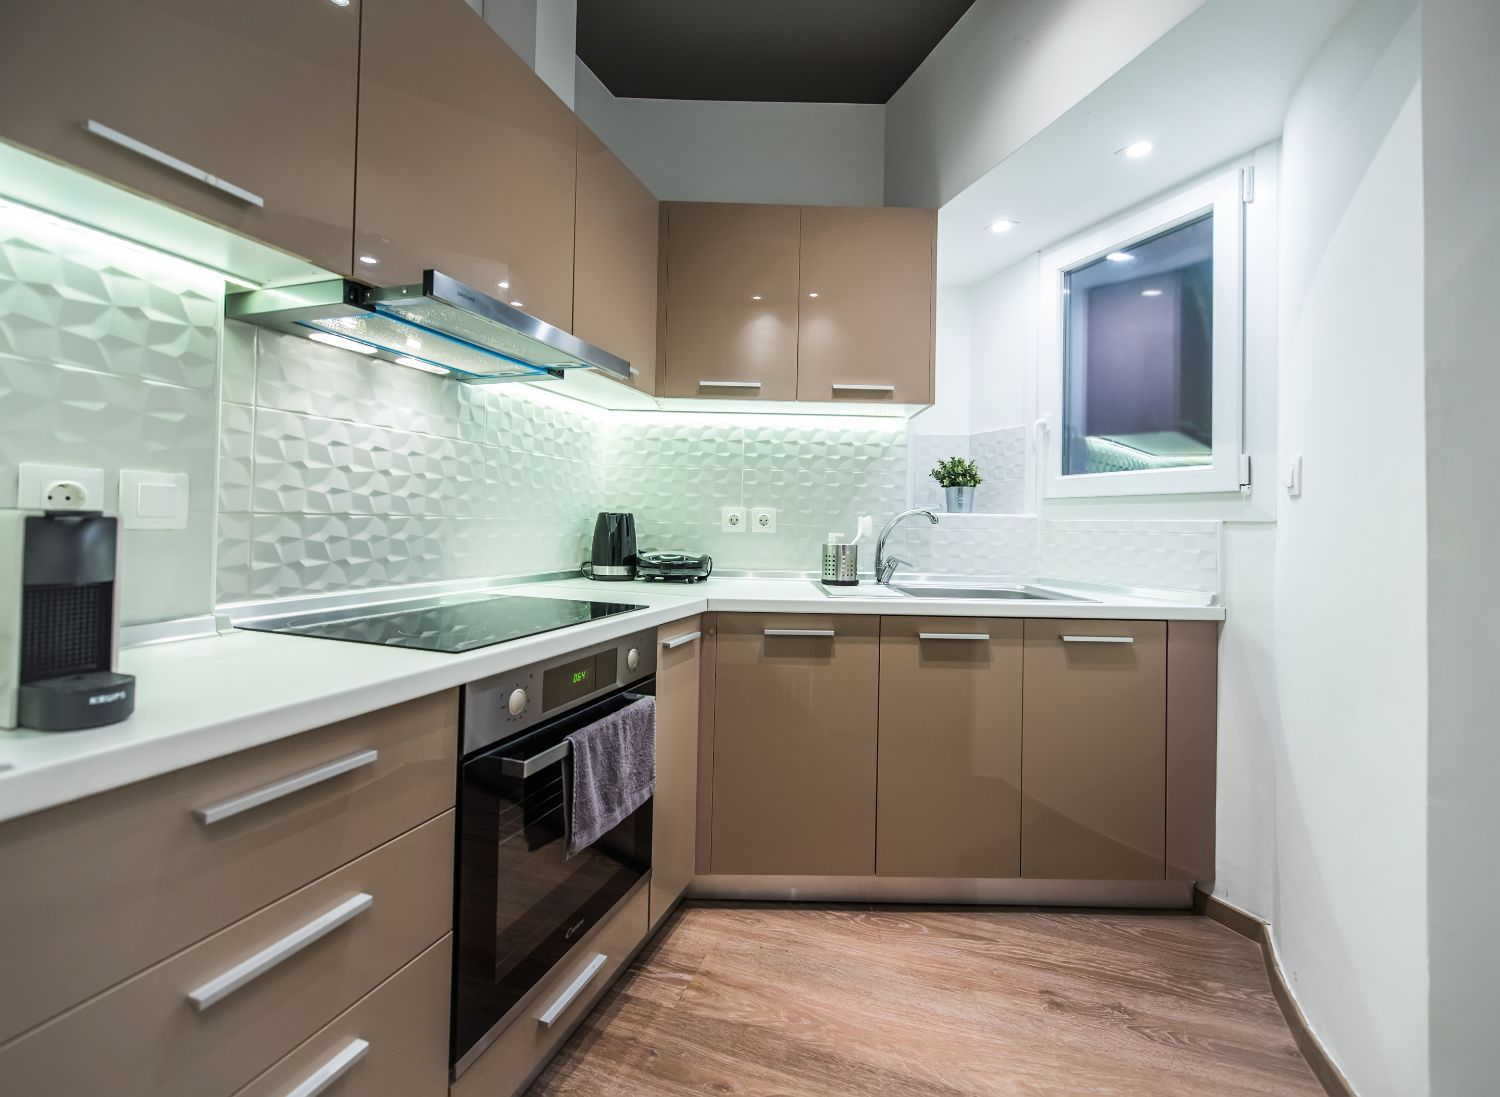 Fully equipped kitchen with Dish Washer and Nespresso Coffee Machine